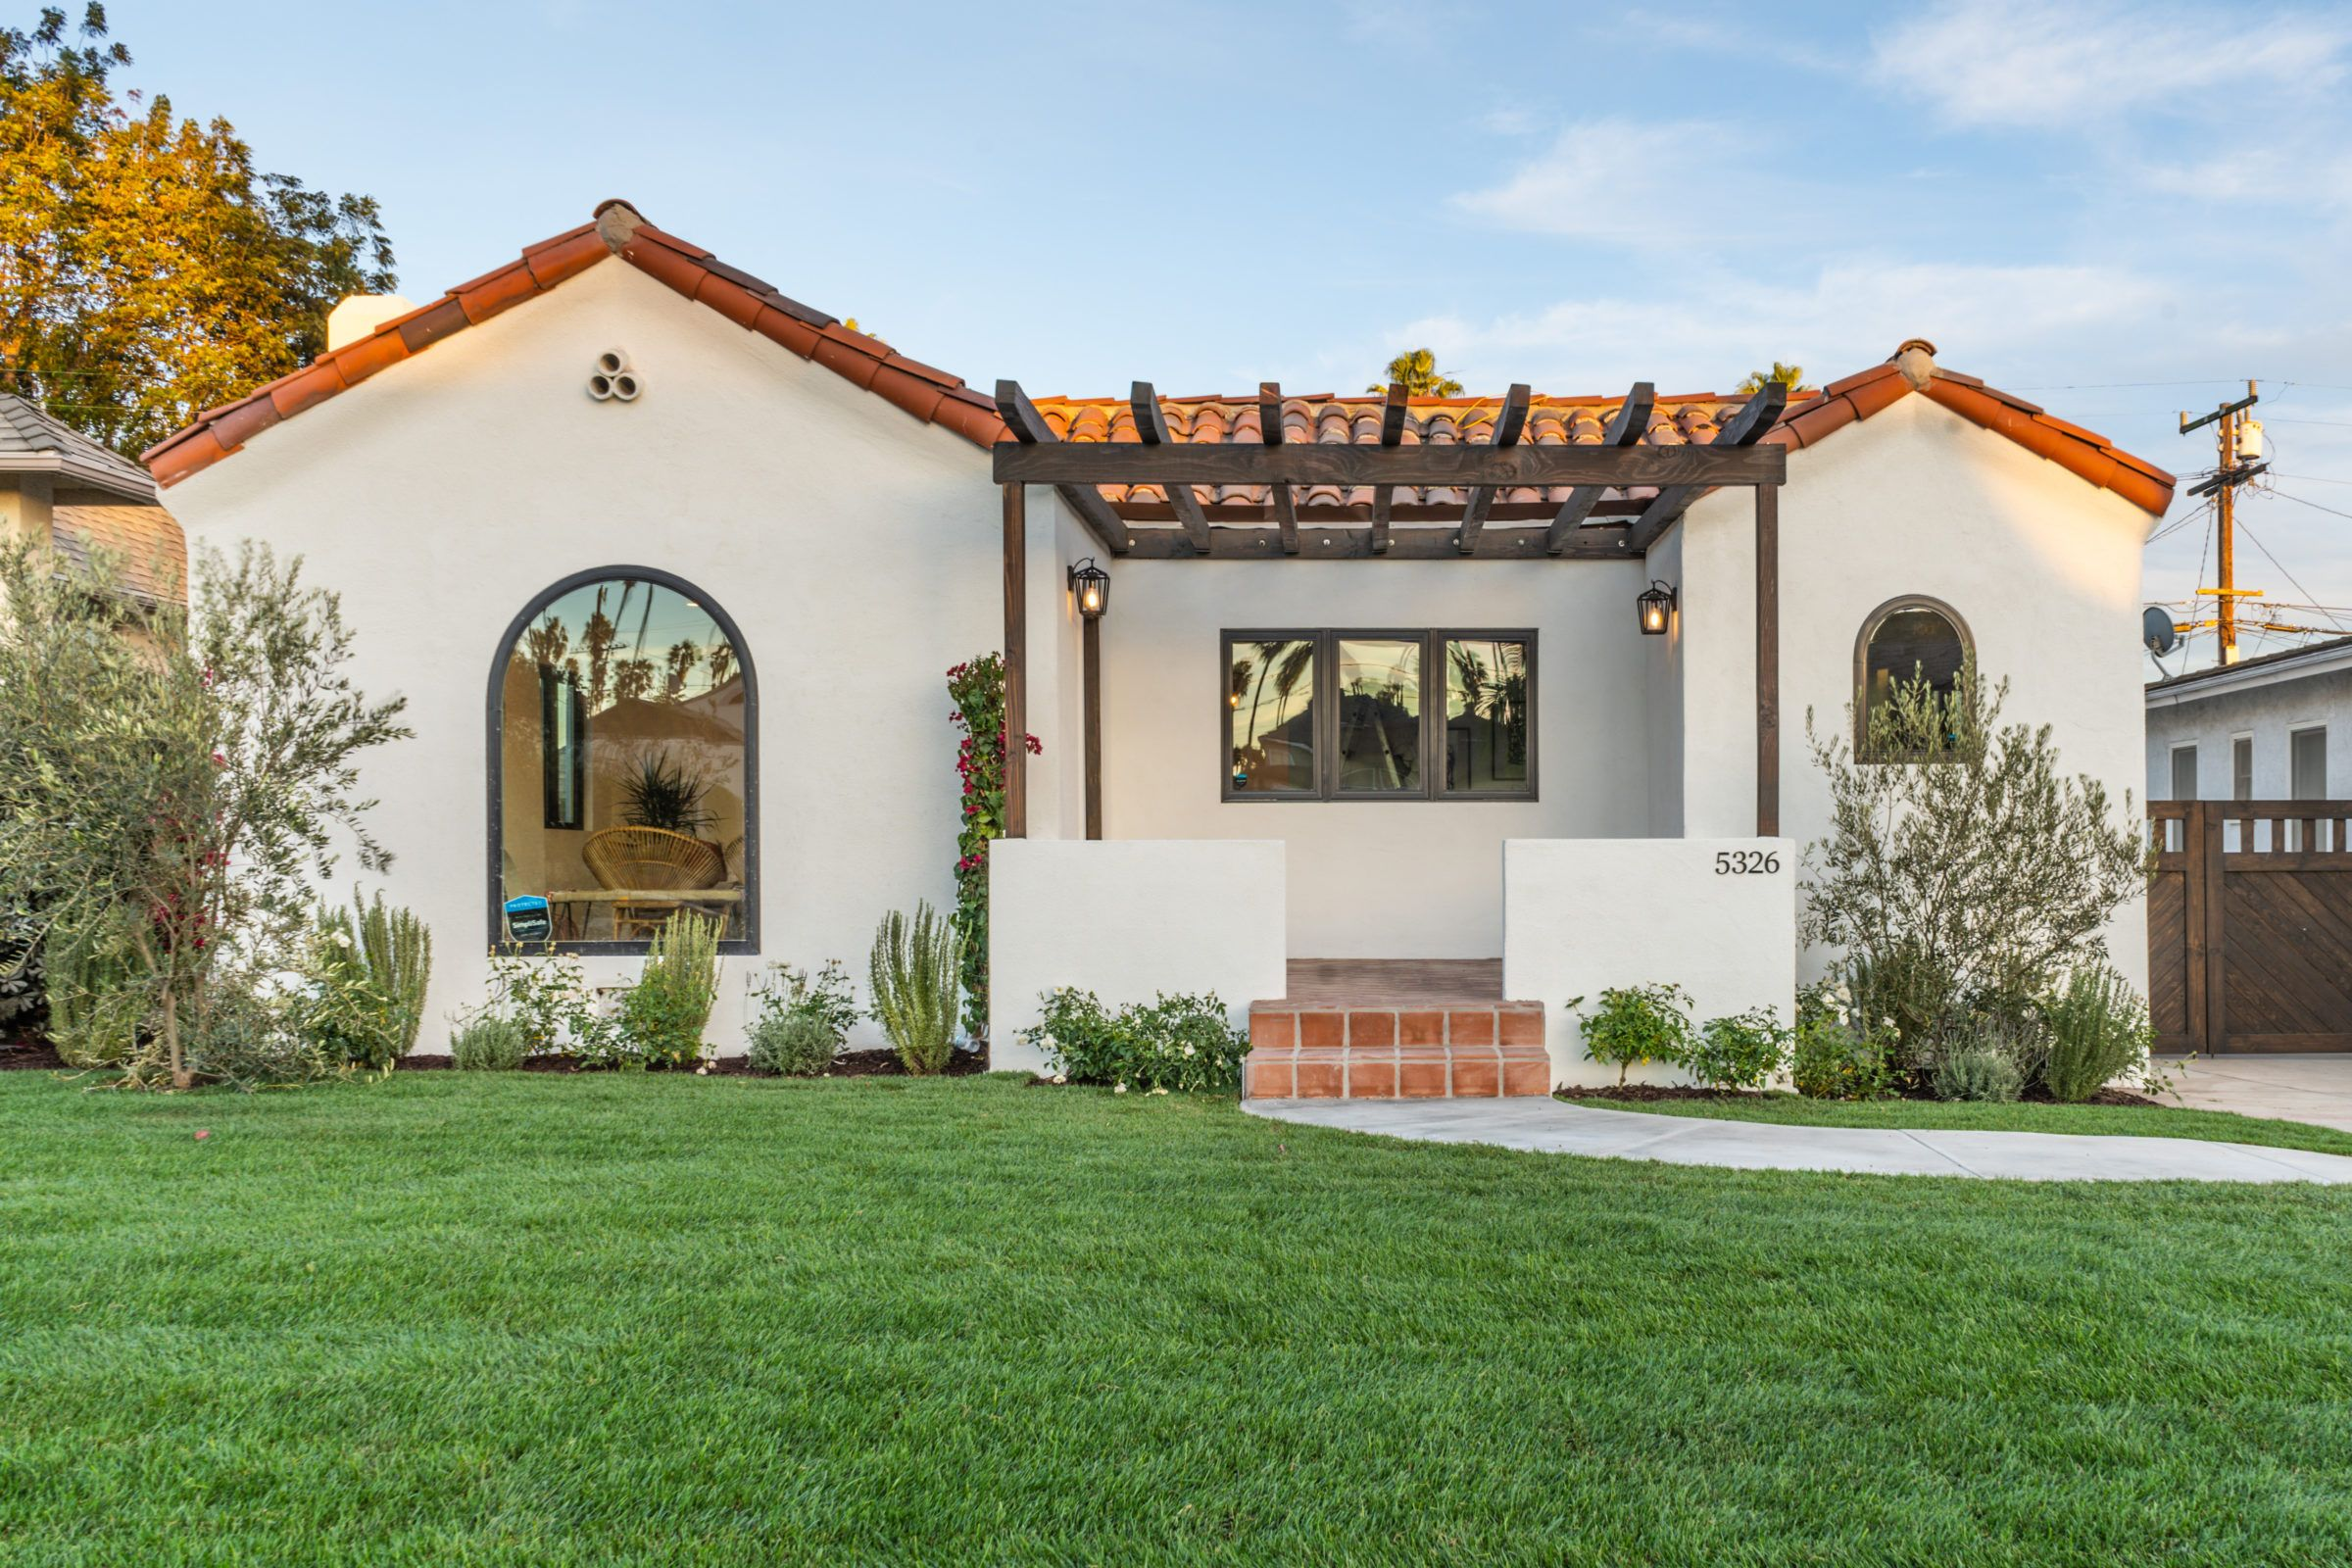 Picture Perfect 3bed 2bath Spanish Bungalow In Windsor Hills By Hello Homes In 2020 Spanish Bungalow Spanish Style Homes Spanish House